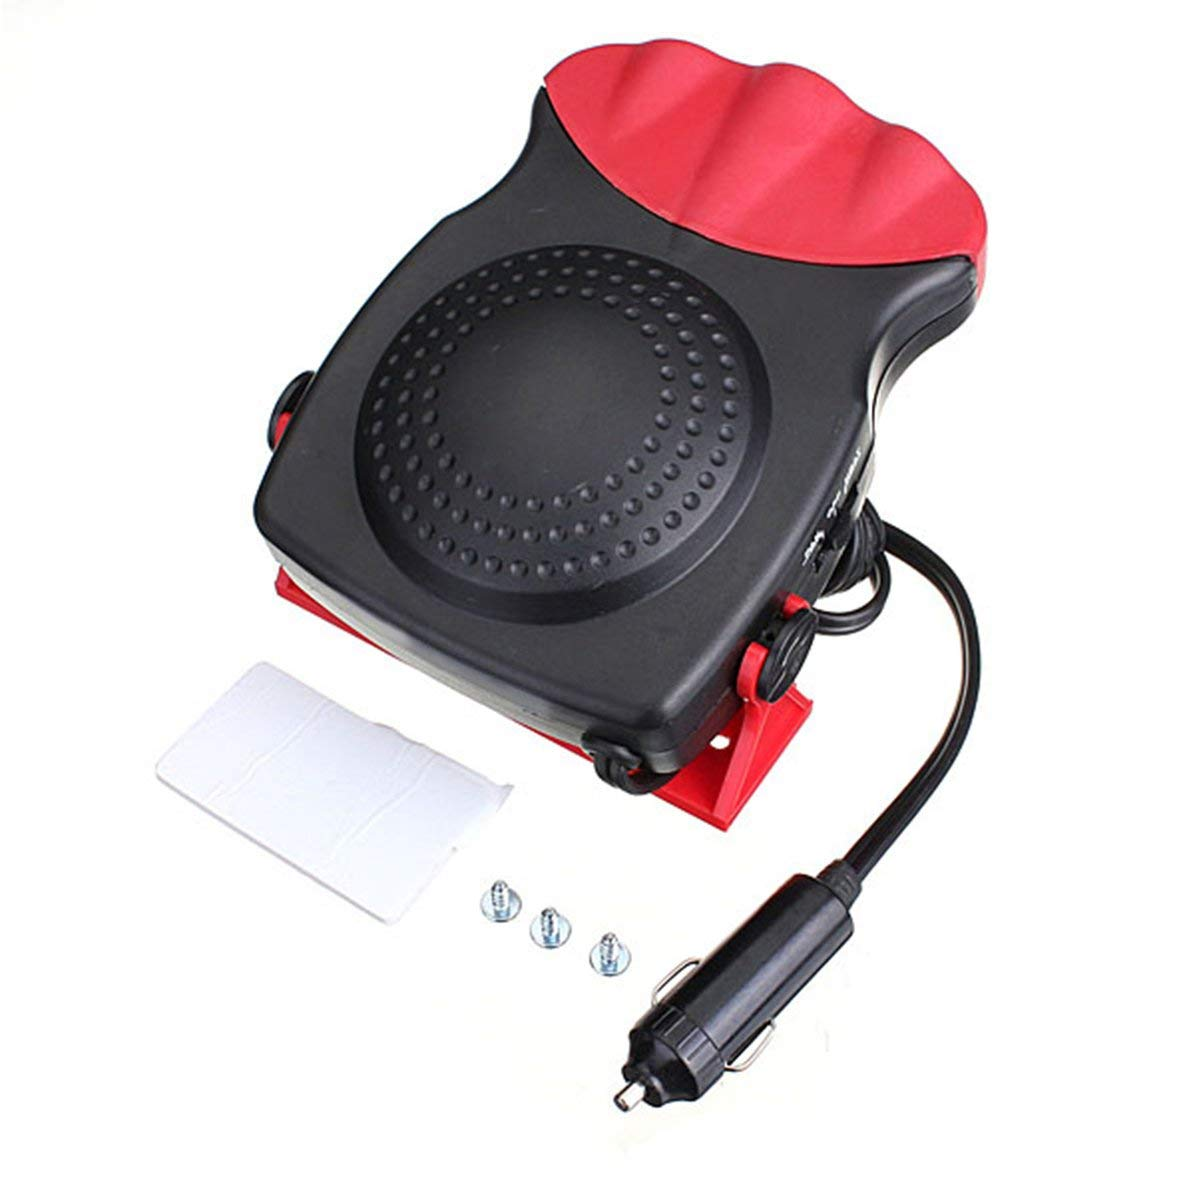 2 In 1 12V 150W Auto Car Heater Portable Heating Fan With Swing-out Handle Windscreen Defroster Dashboard Driving Demister DoMoment